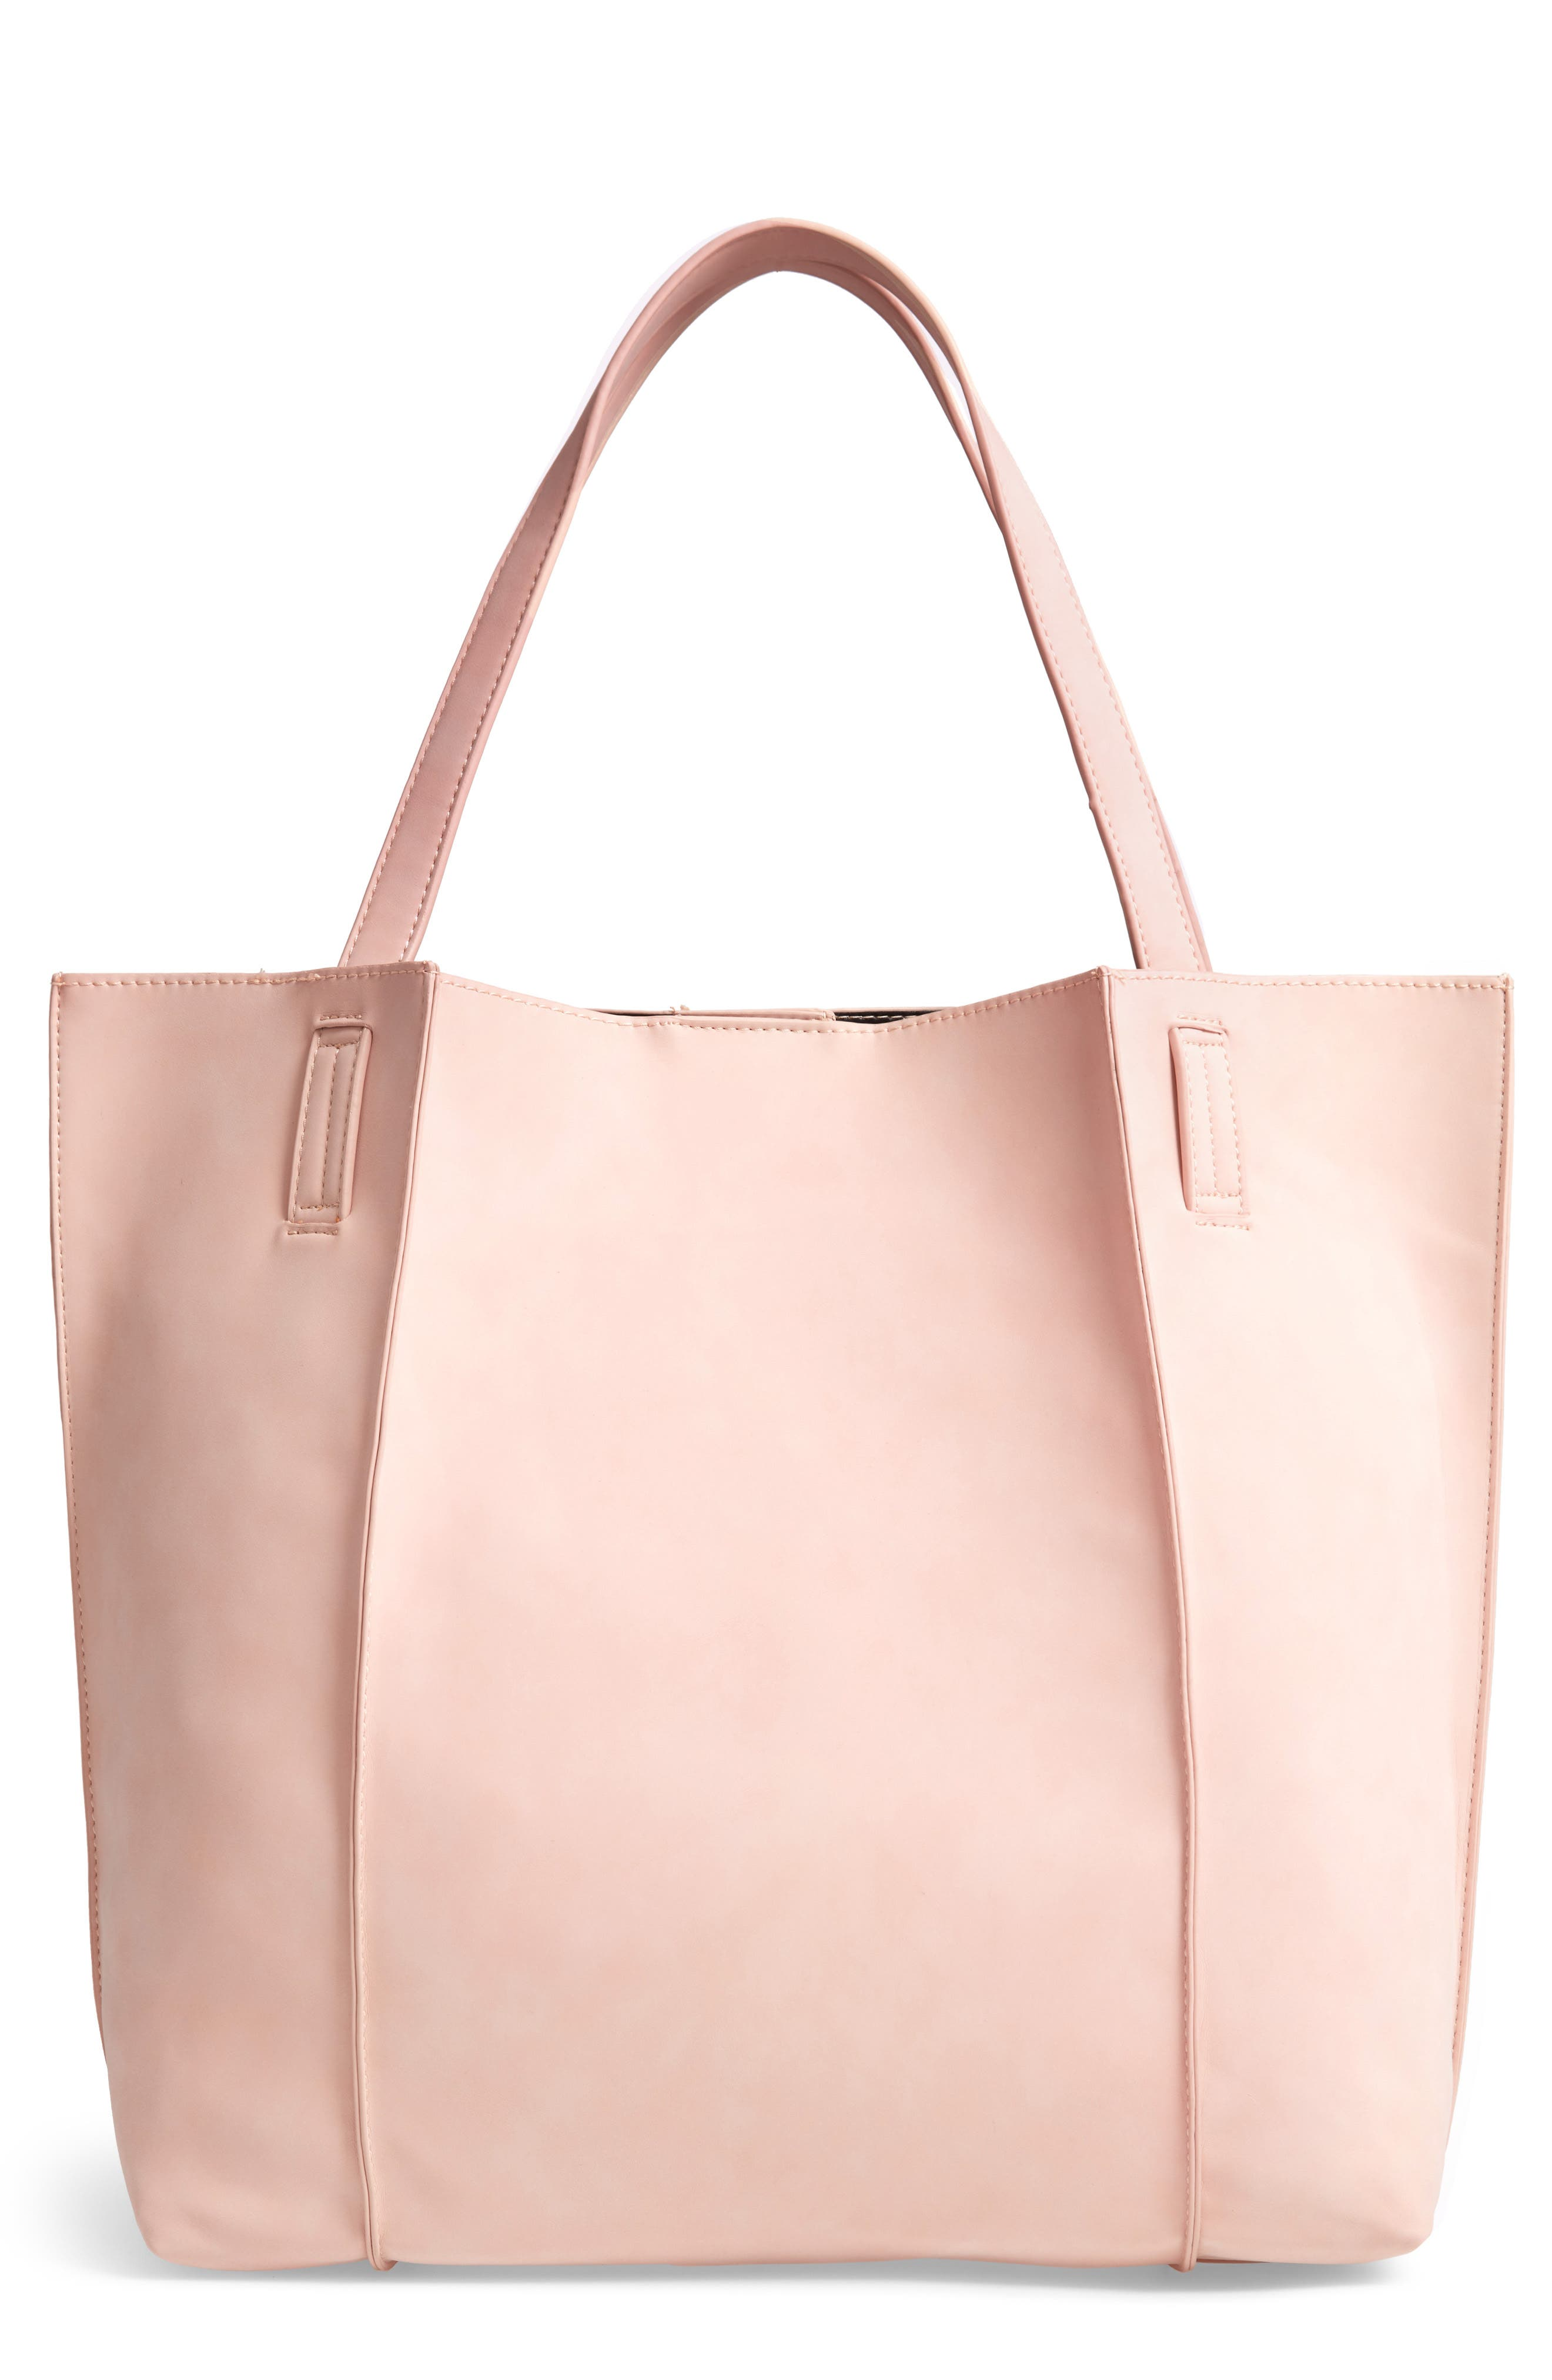 Blair Faux Leather Tote,                             Main thumbnail 1, color,                             BLUSH